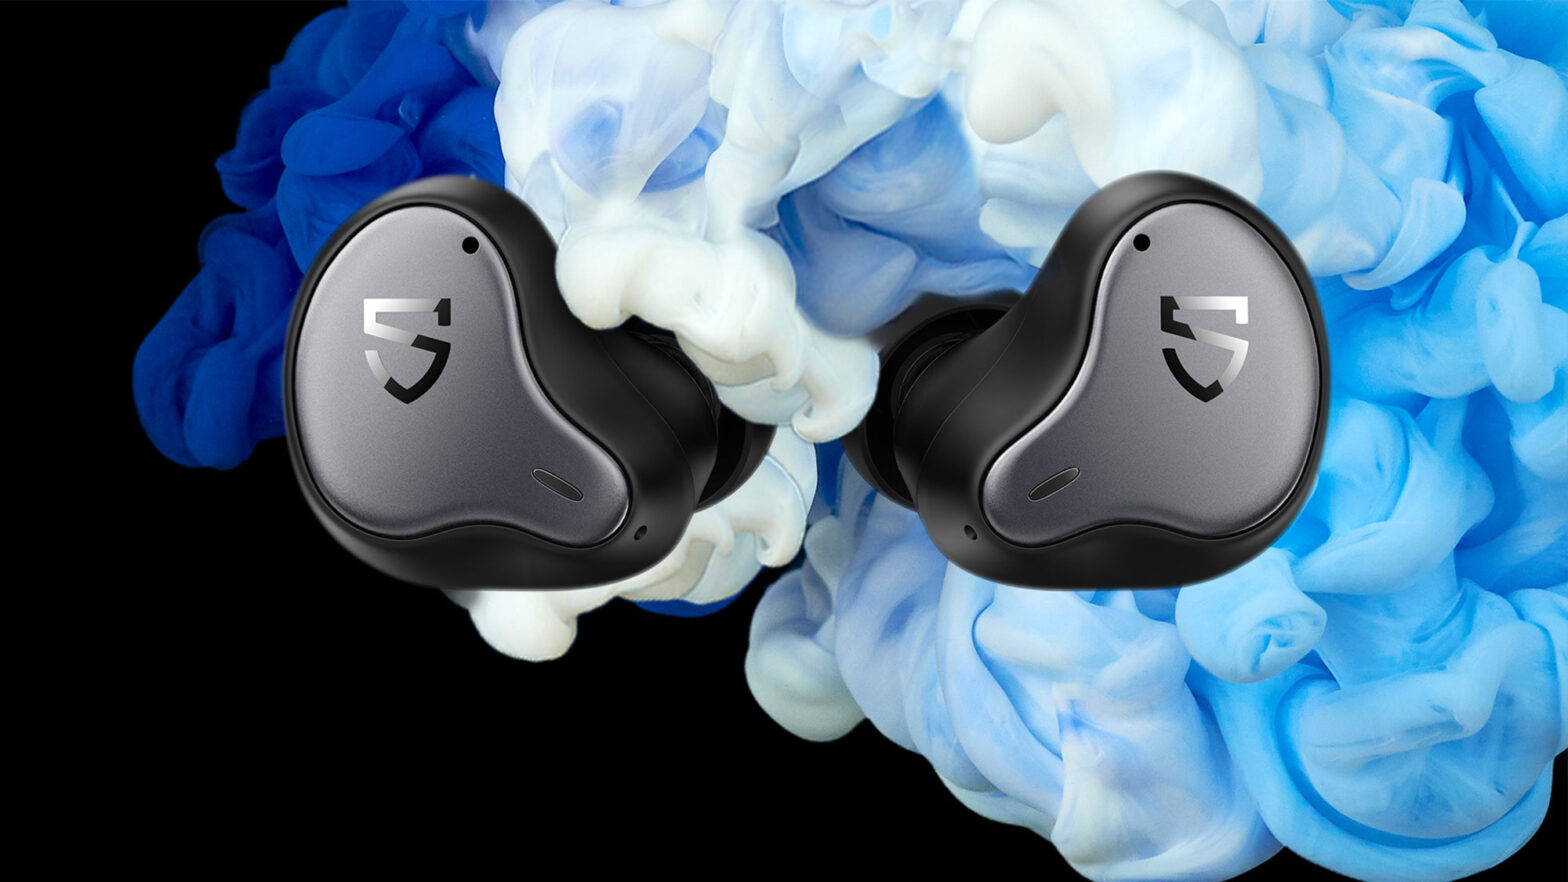 SOUNDPEATS H1 Hybrid Dual-driver TWS Earbuds